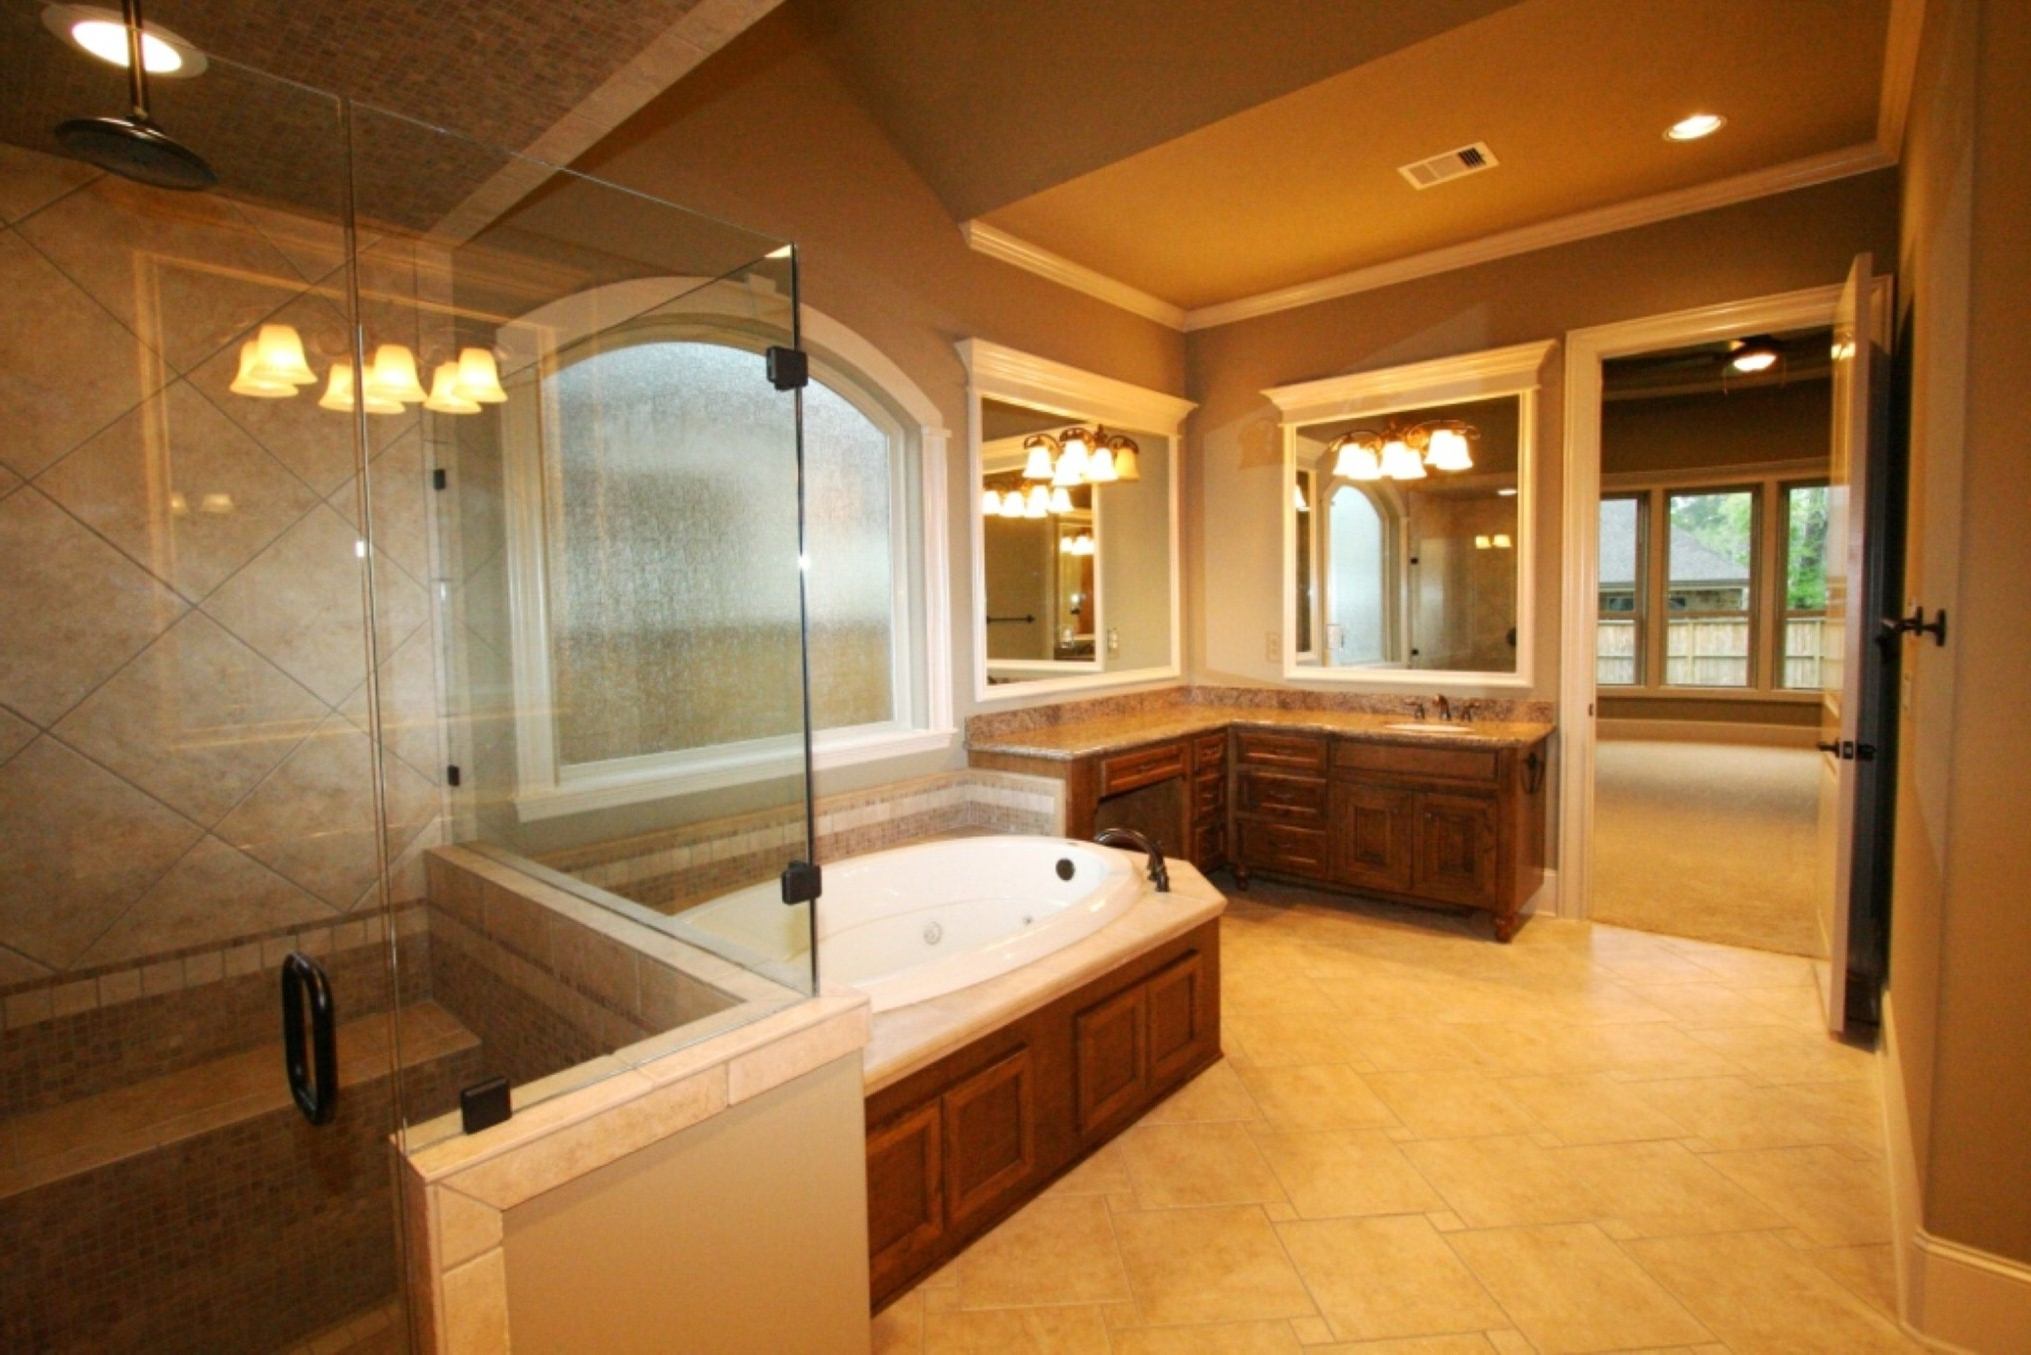 Neat Inspirational Oval Bathtub And Glass Shower Door Design Feat Corner Vanity Idea In Compact Master Bathroom (View 9 of 21)